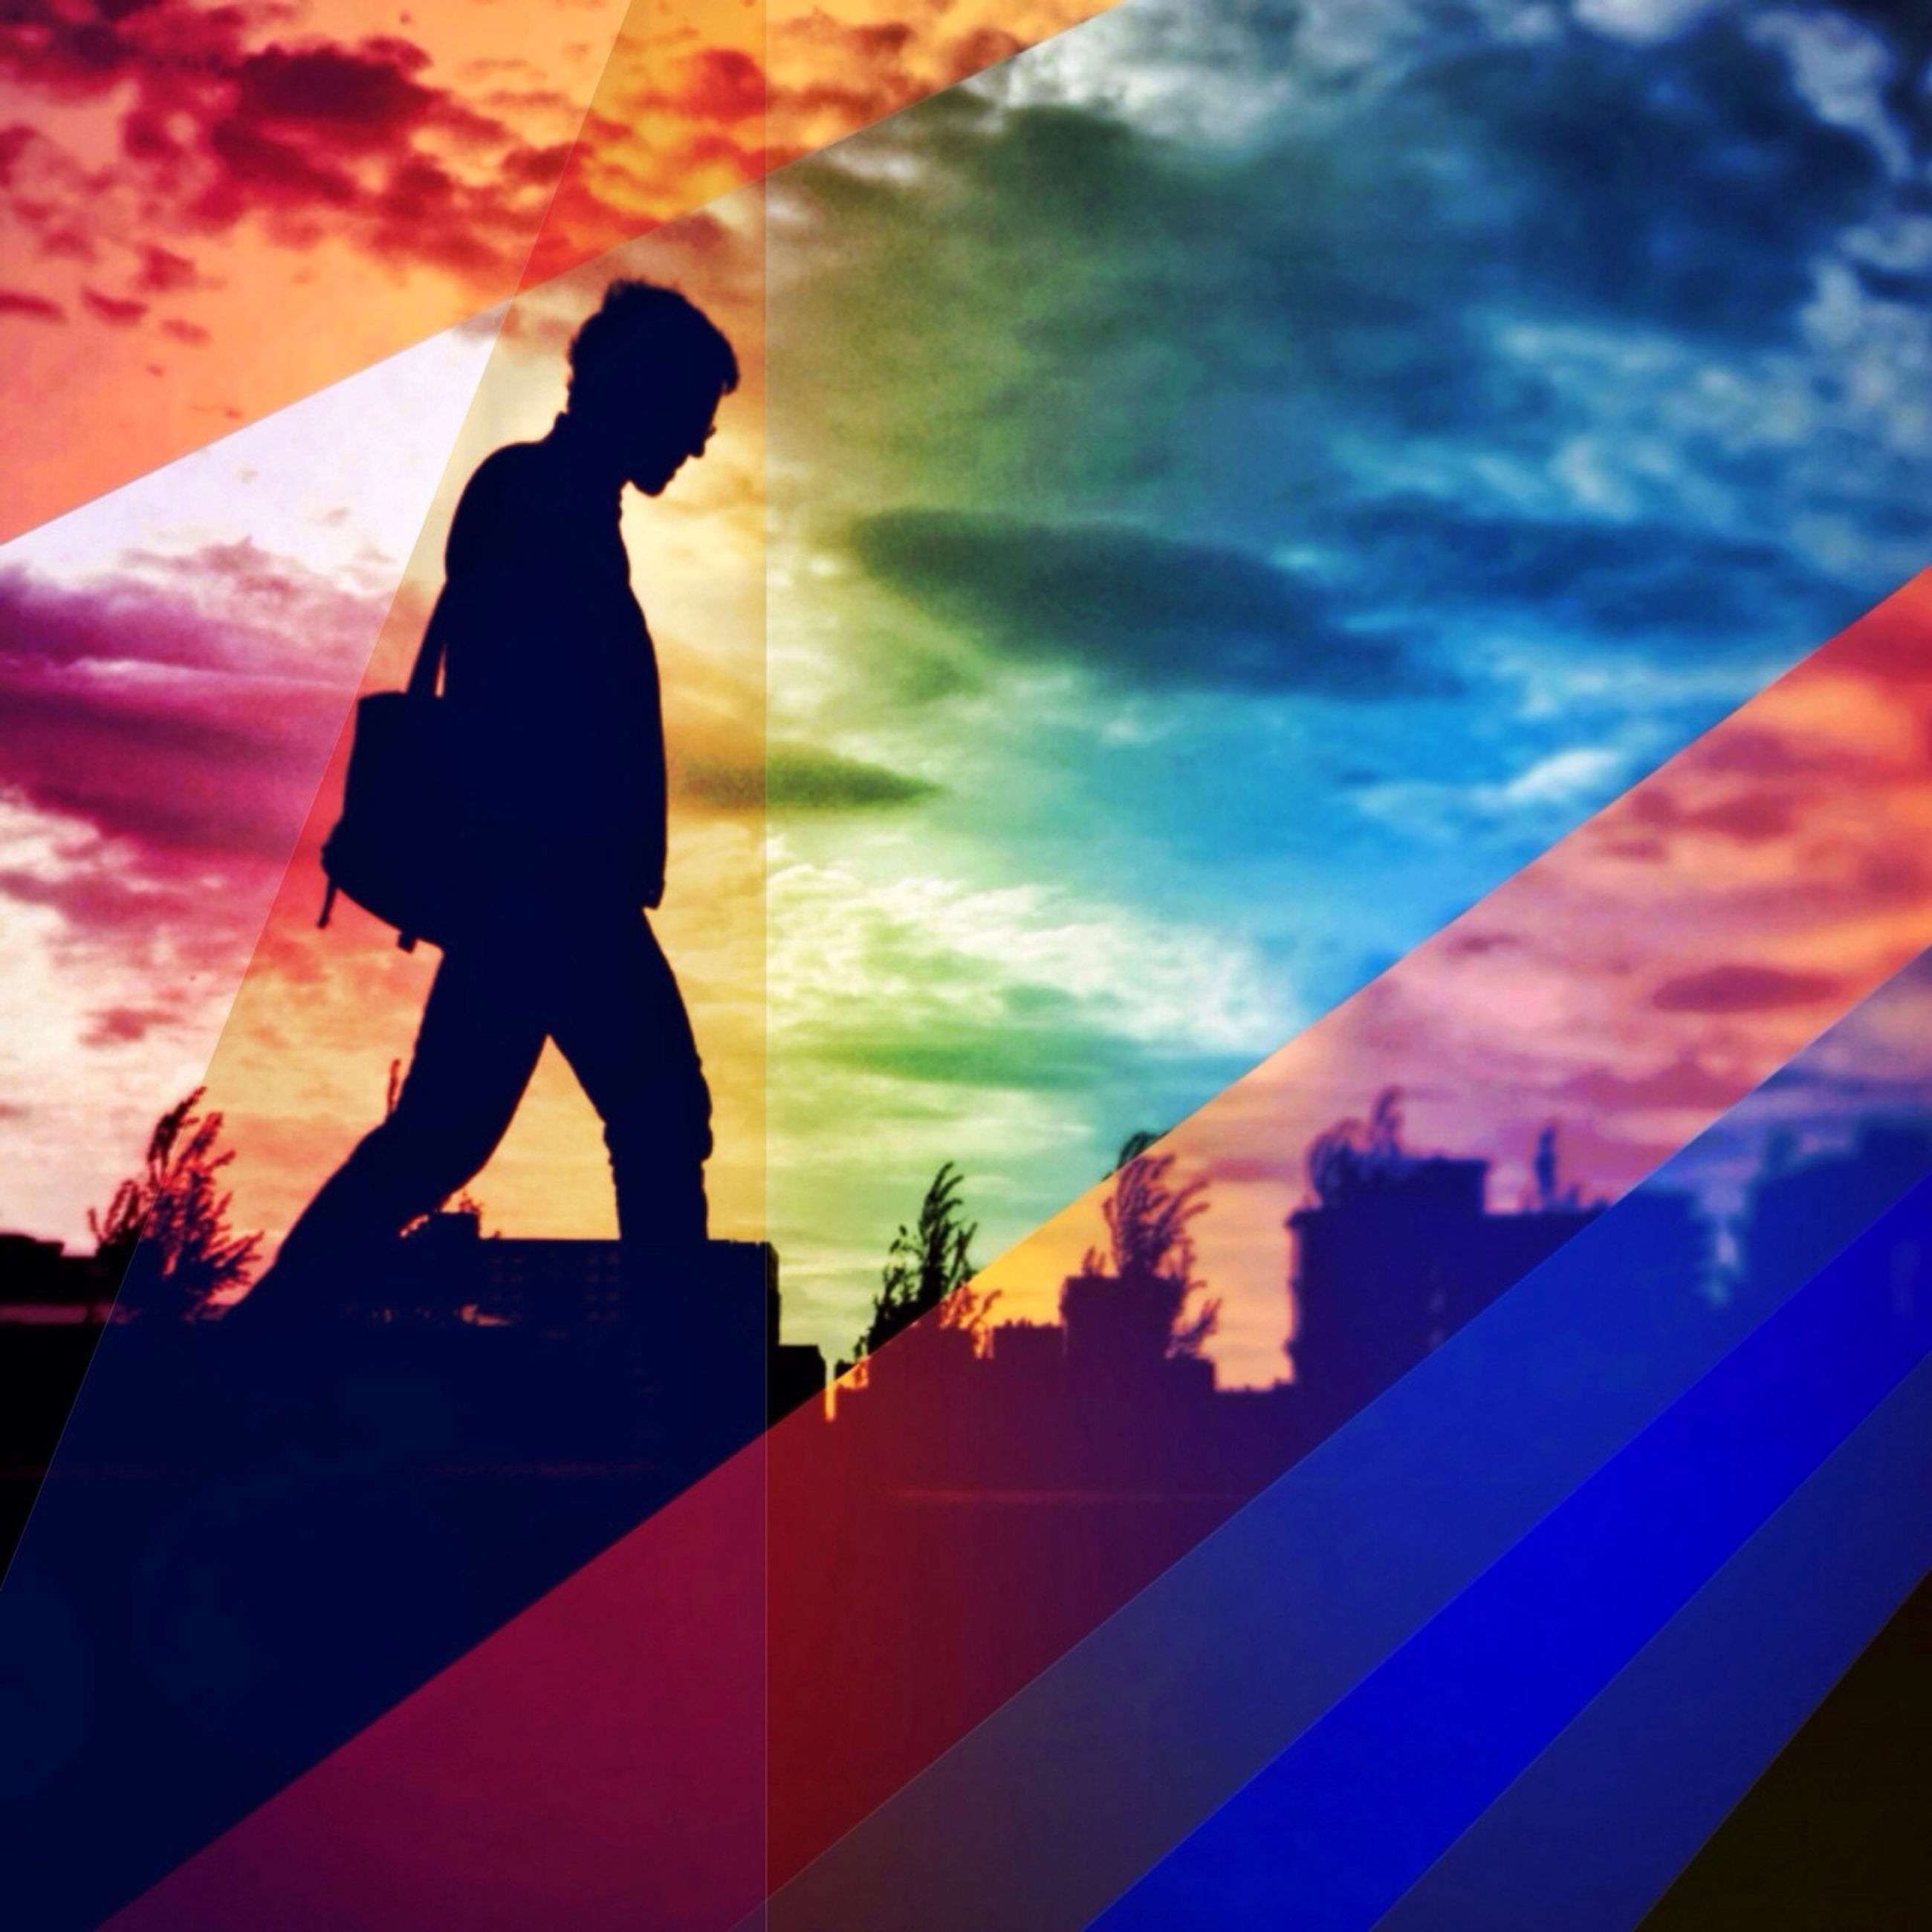 lifestyles, standing, leisure activity, silhouette, sky, full length, cloud - sky, sunset, men, three quarter length, casual clothing, person, rear view, built structure, side view, outdoors, low angle view, cloud